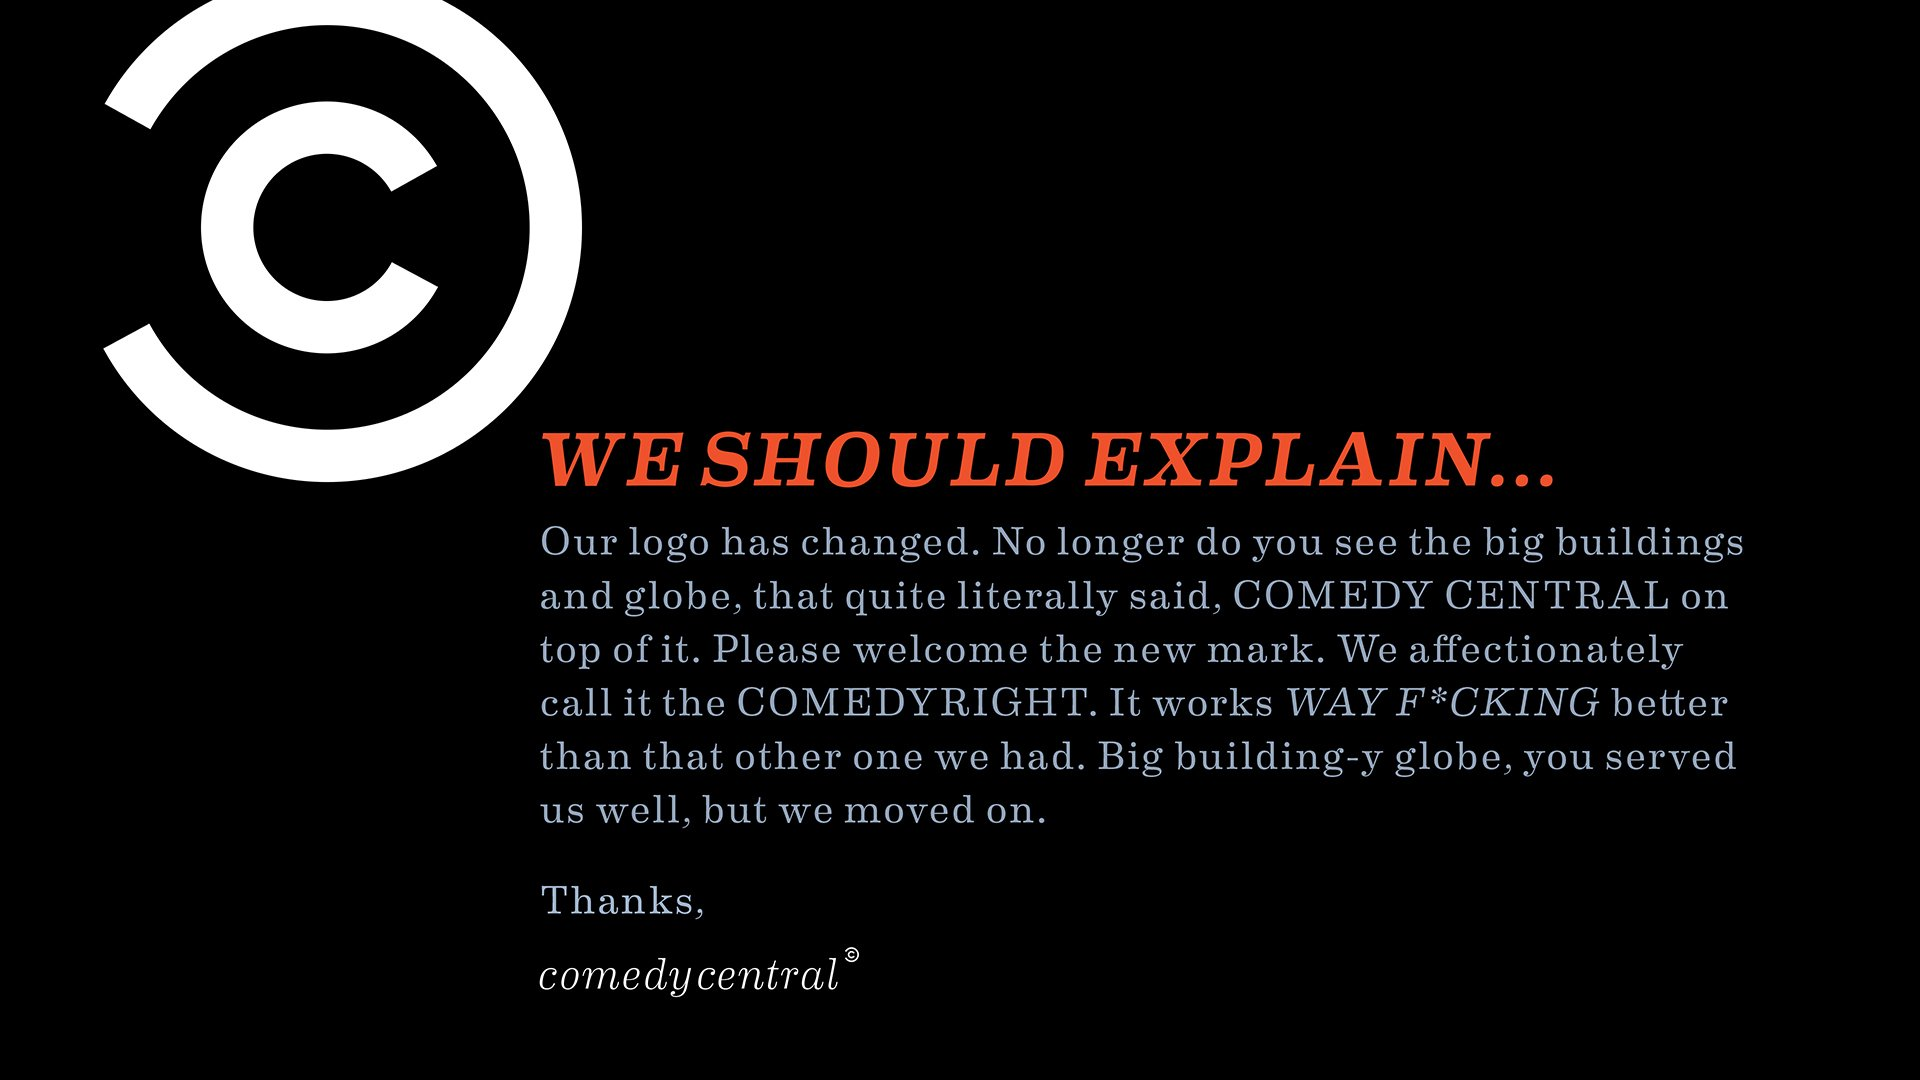 Comedy Central brand voice